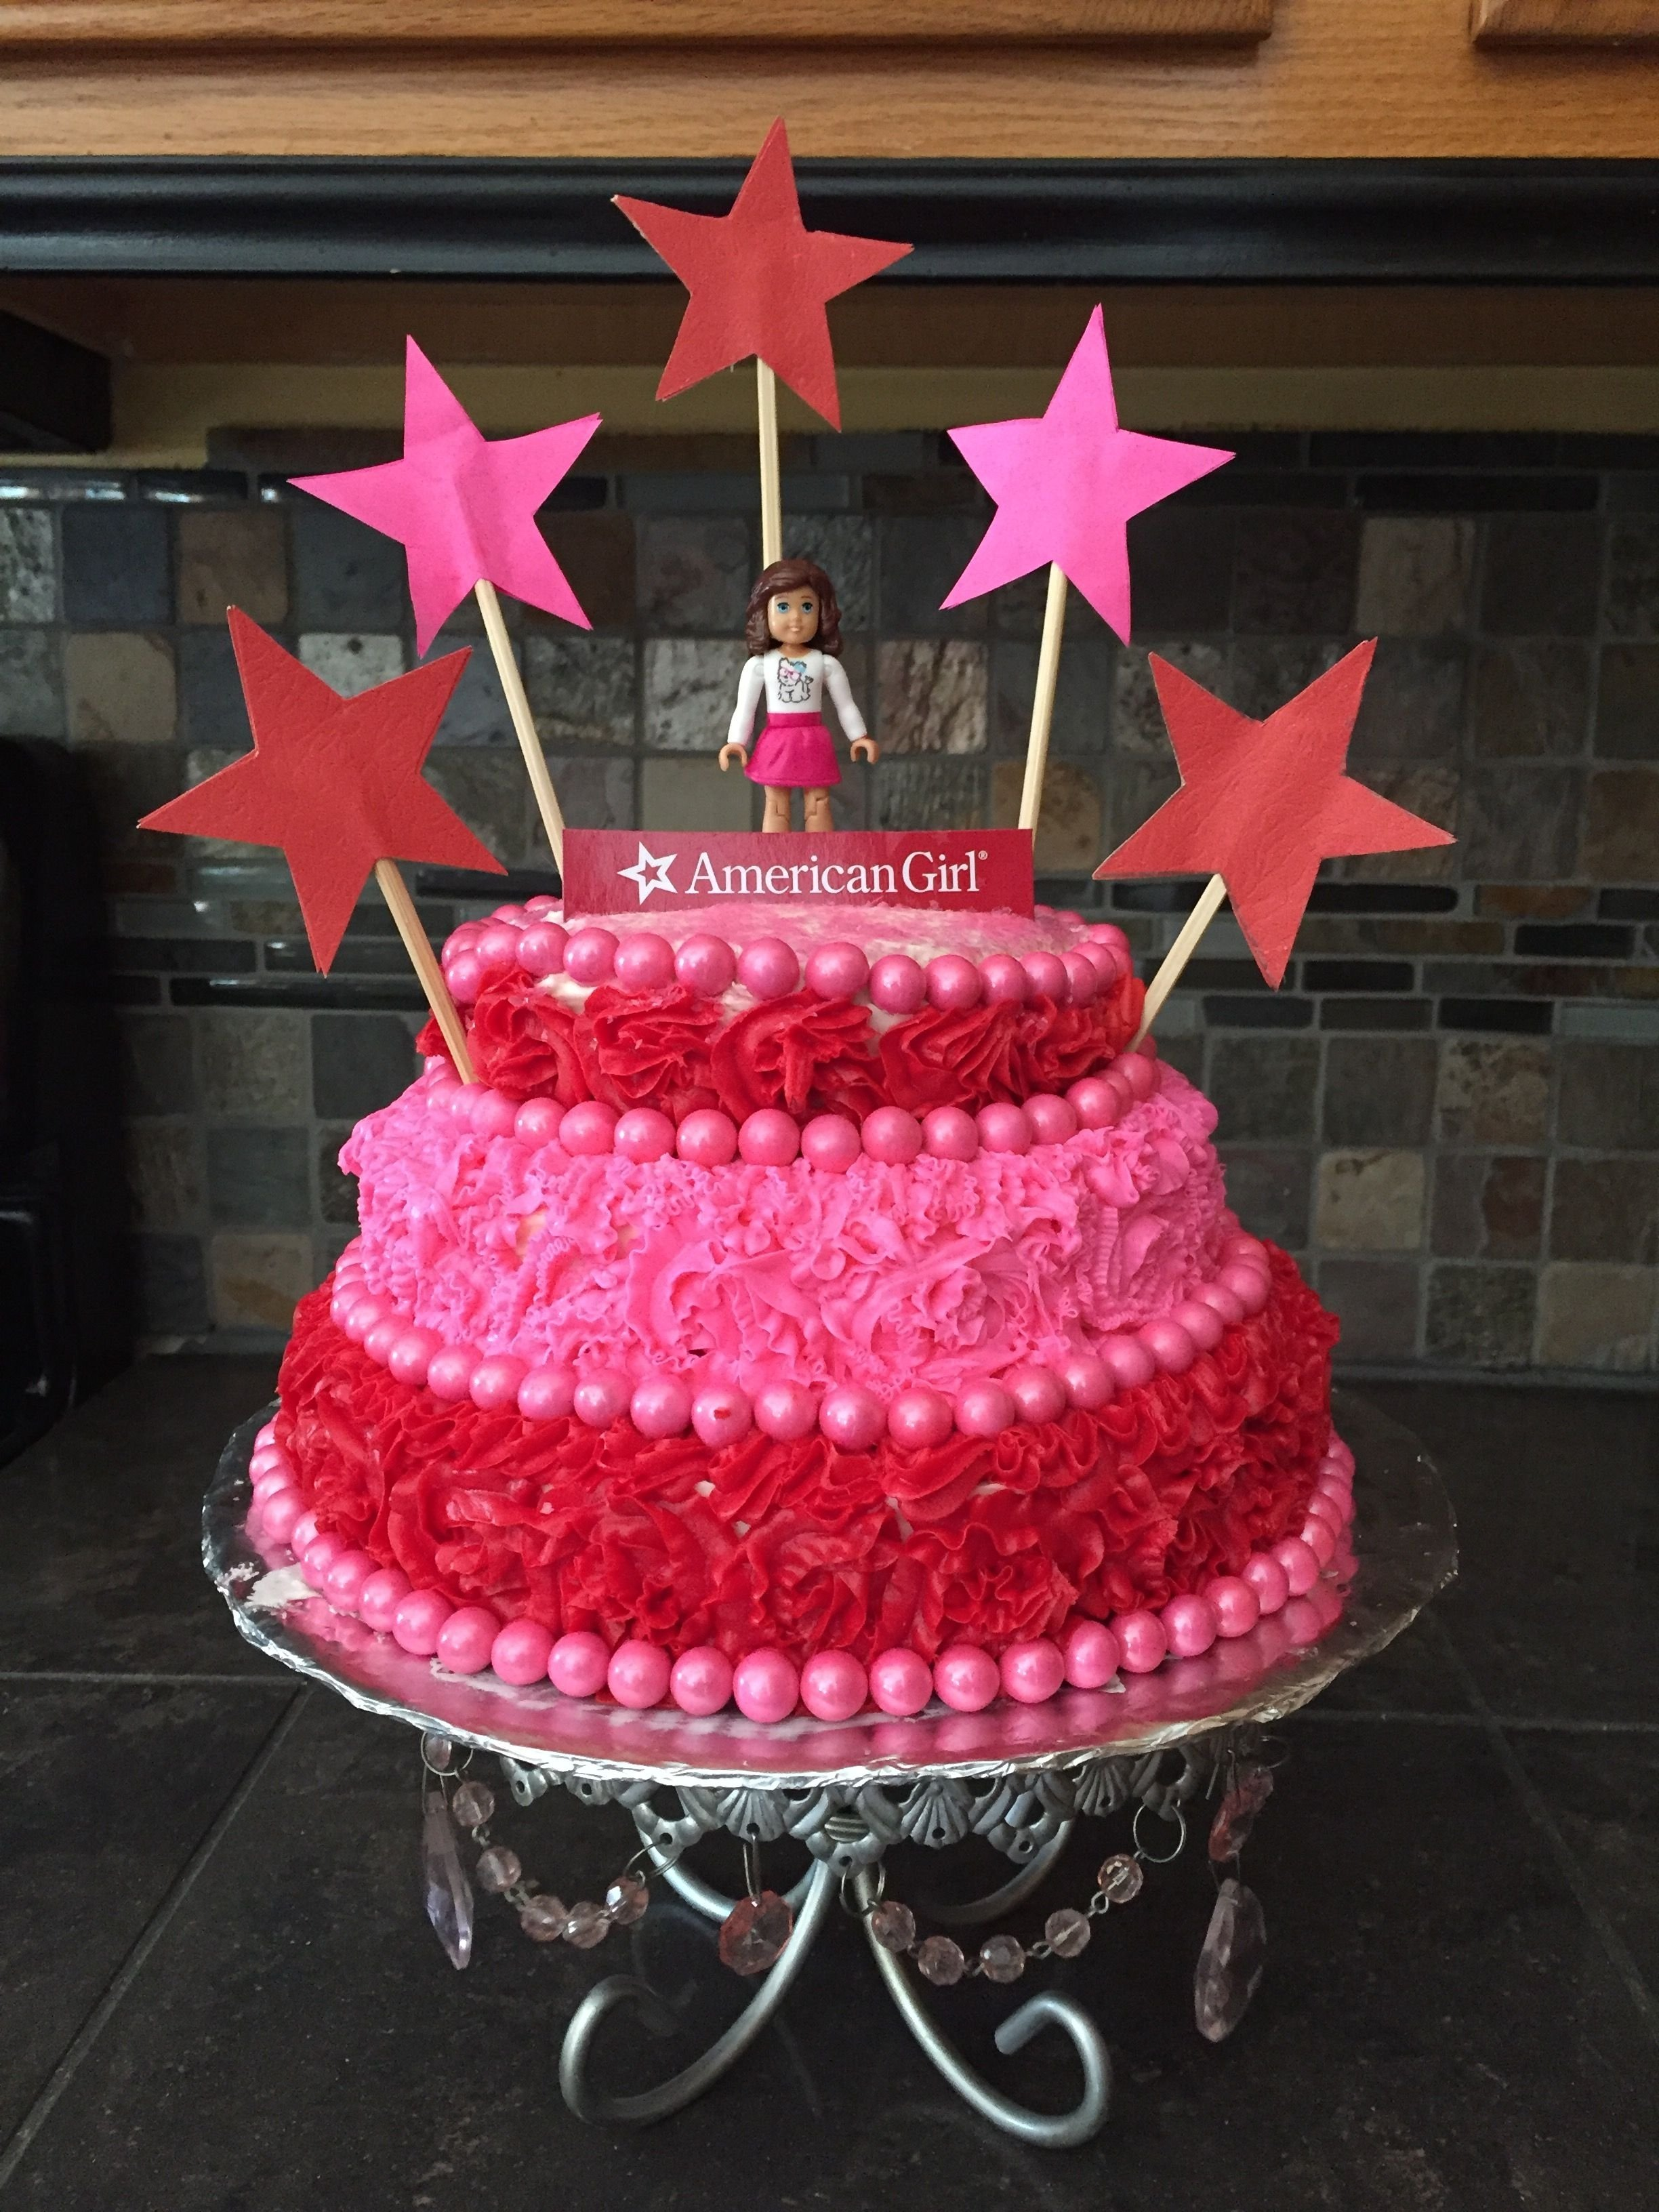 10 Amazing American Girl Birthday Cake Ideas